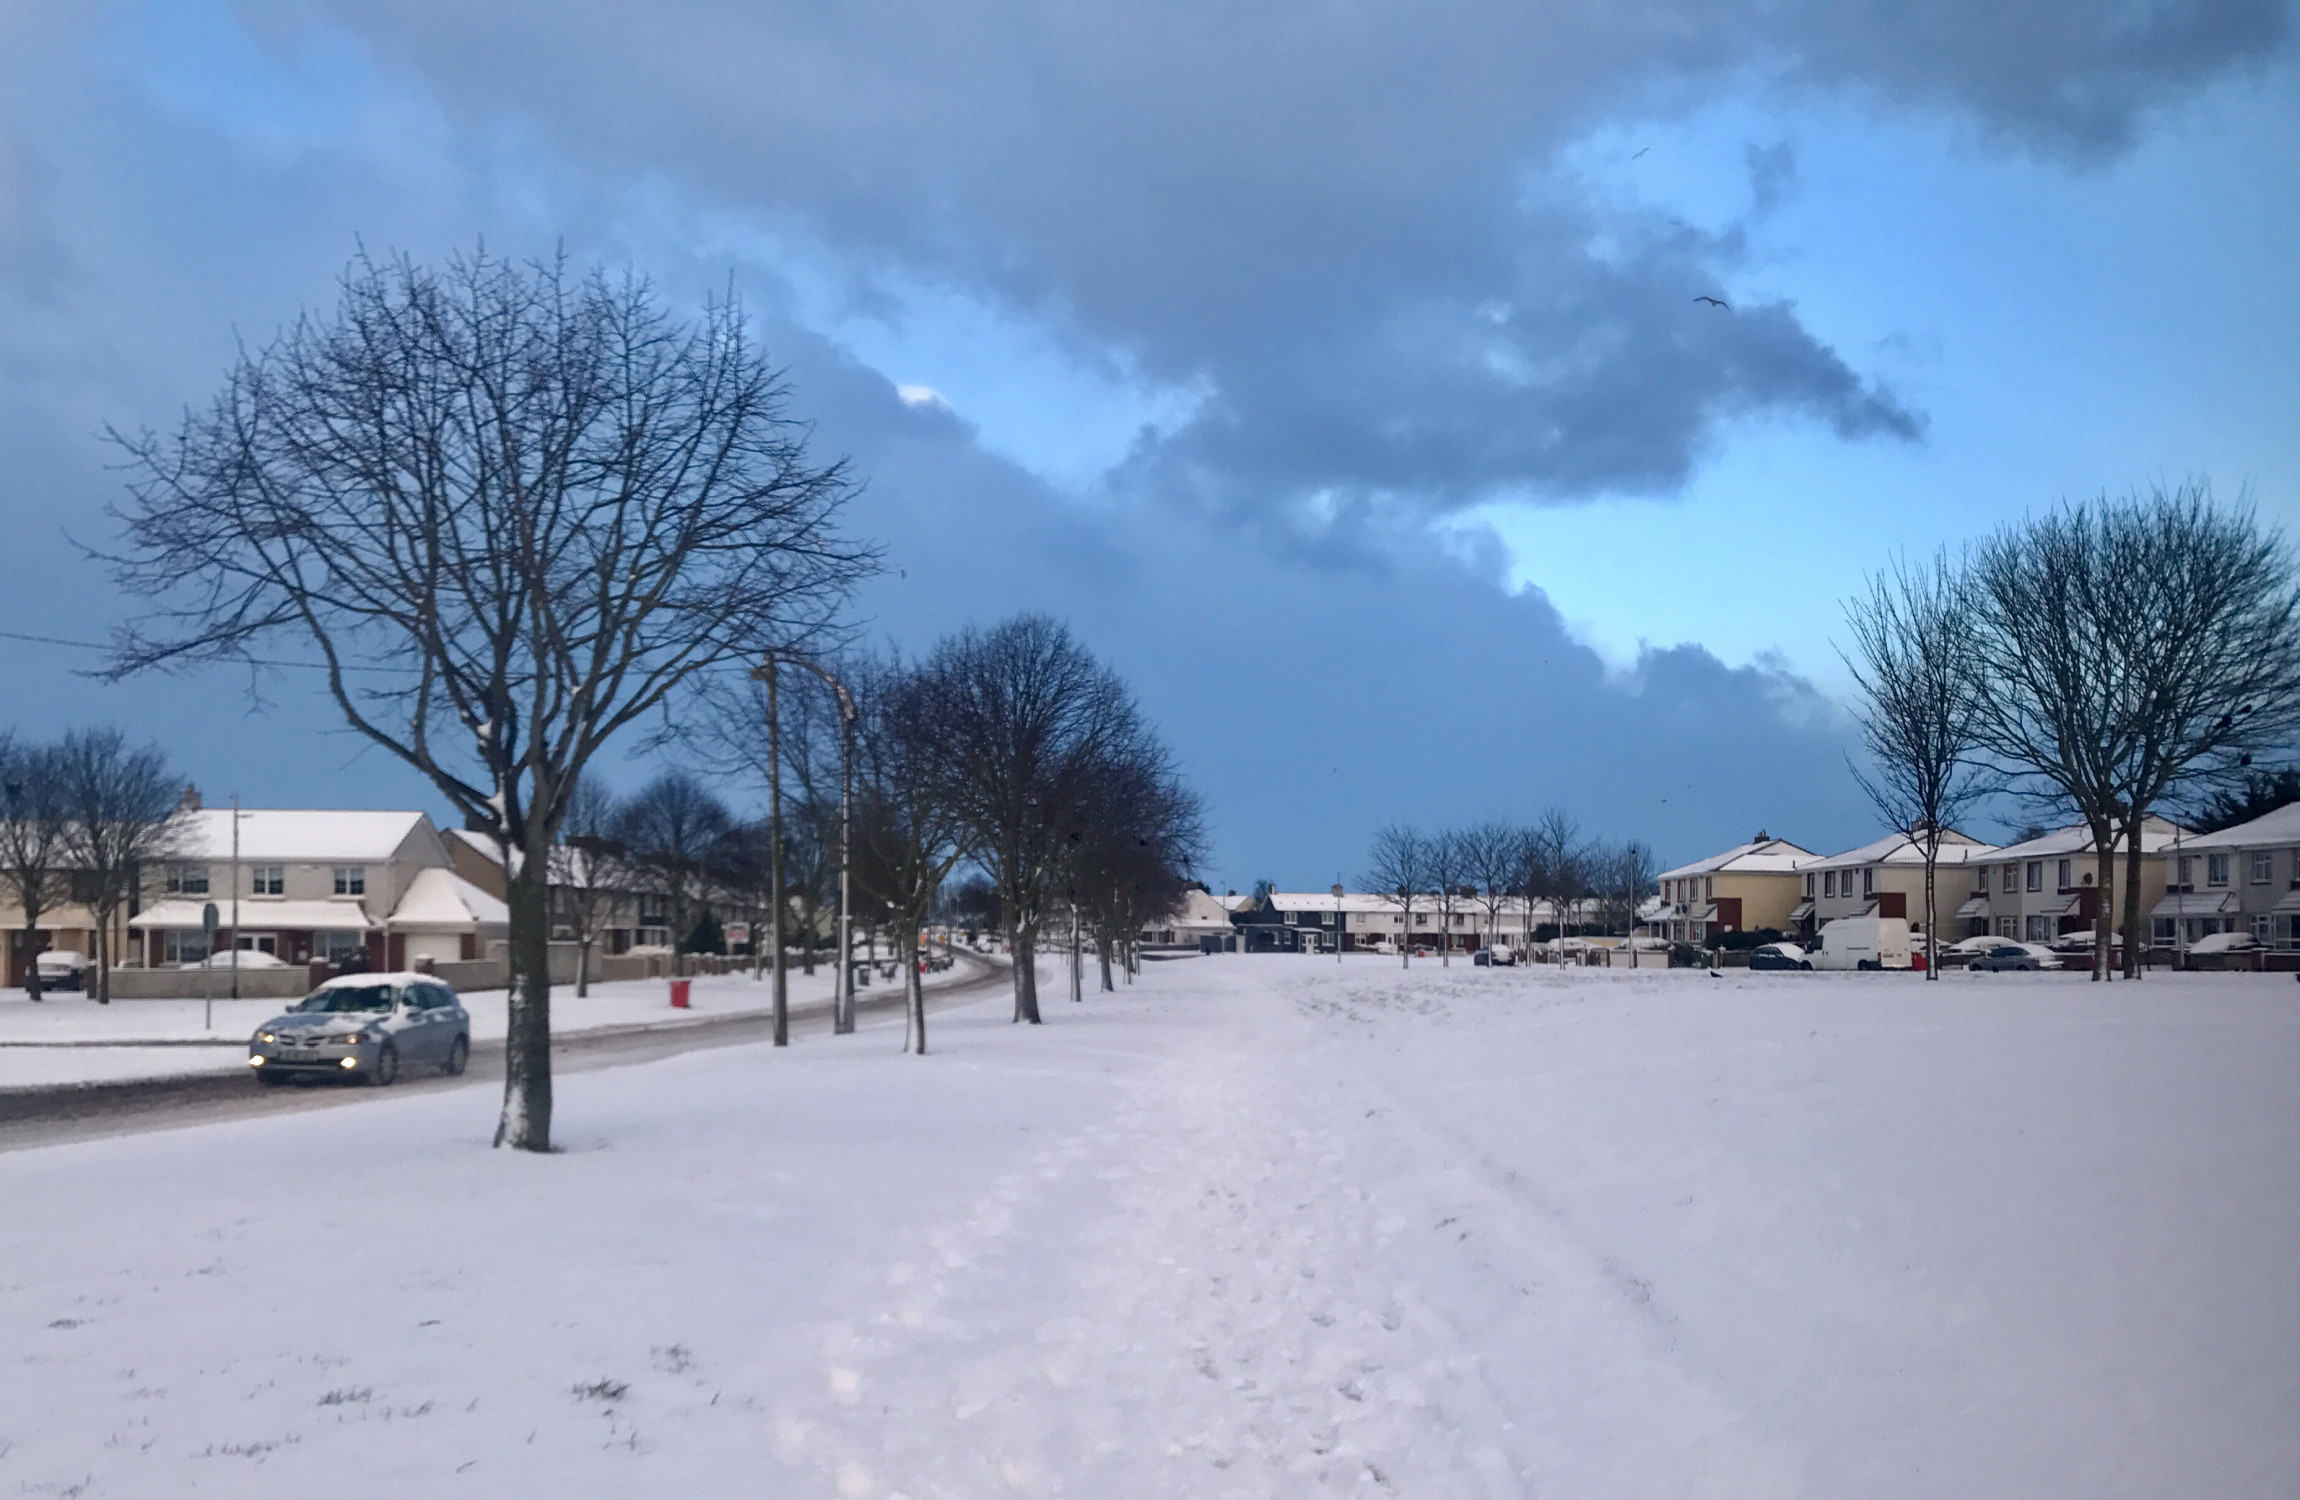 Status Red weather alert for 5 counties as 'snow beast' descends